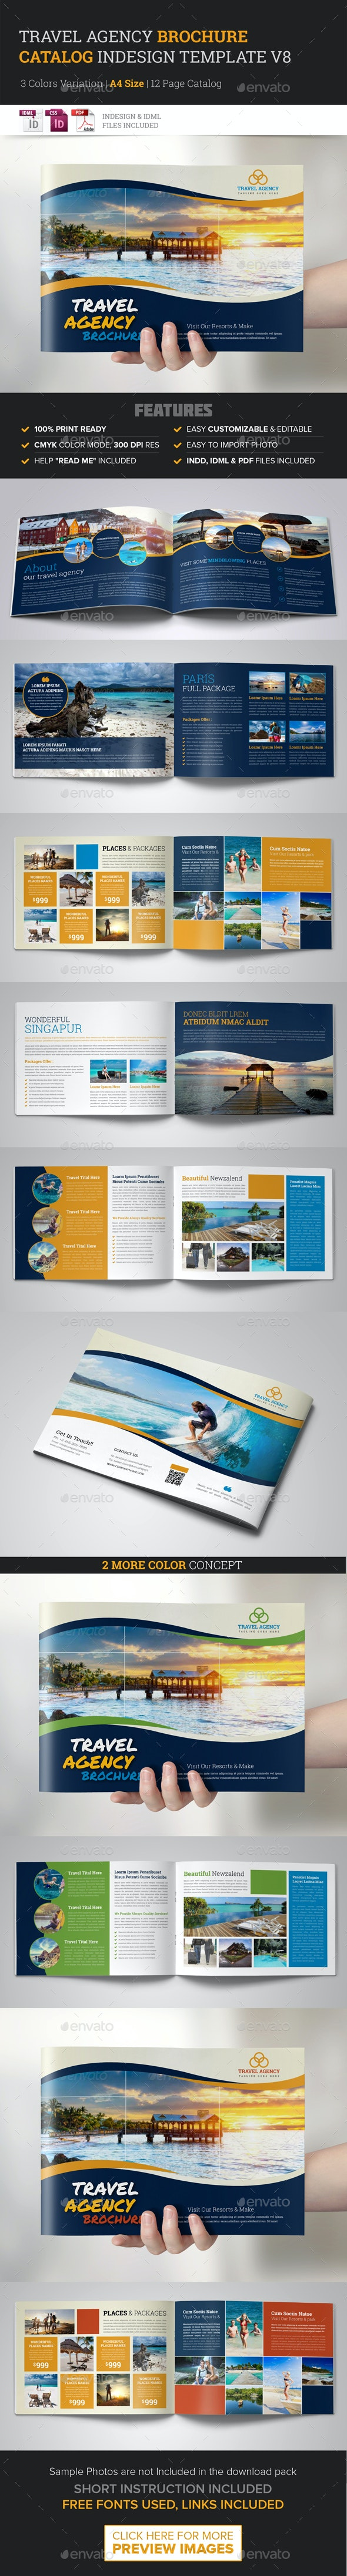 Travel Agency Brochure Catalog InDesign Template v8 - Corporate Brochures